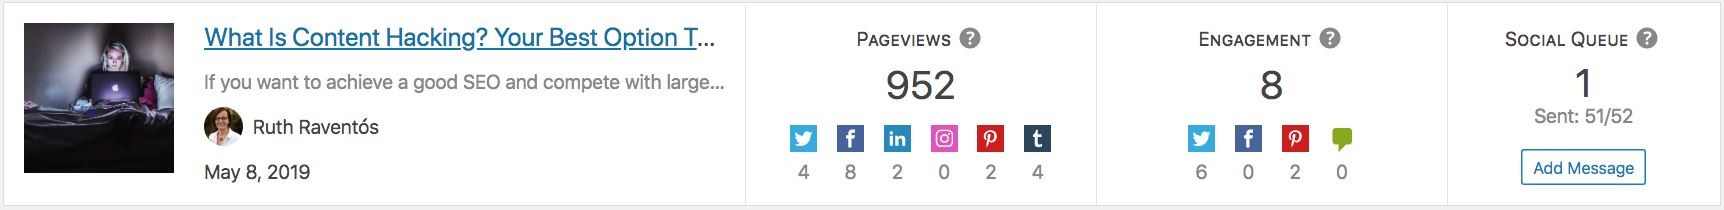 Detail of the analytics of a post in the Analytics page of Nelio Content.